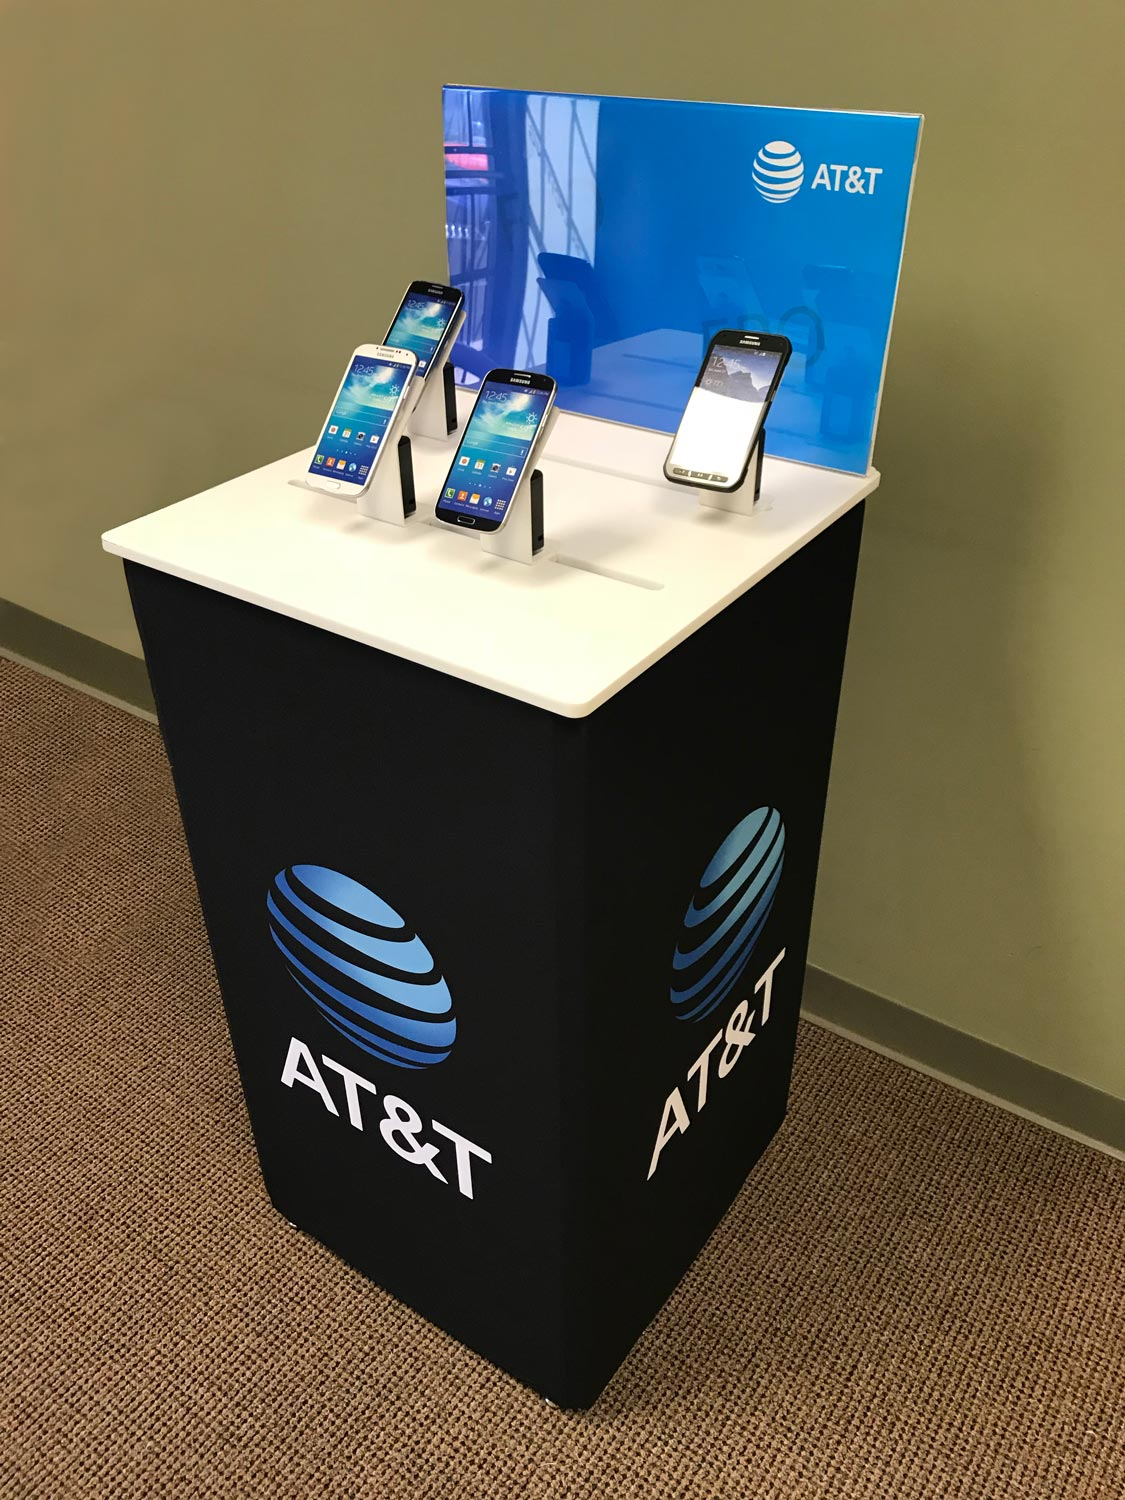 AT&T custom print stand.